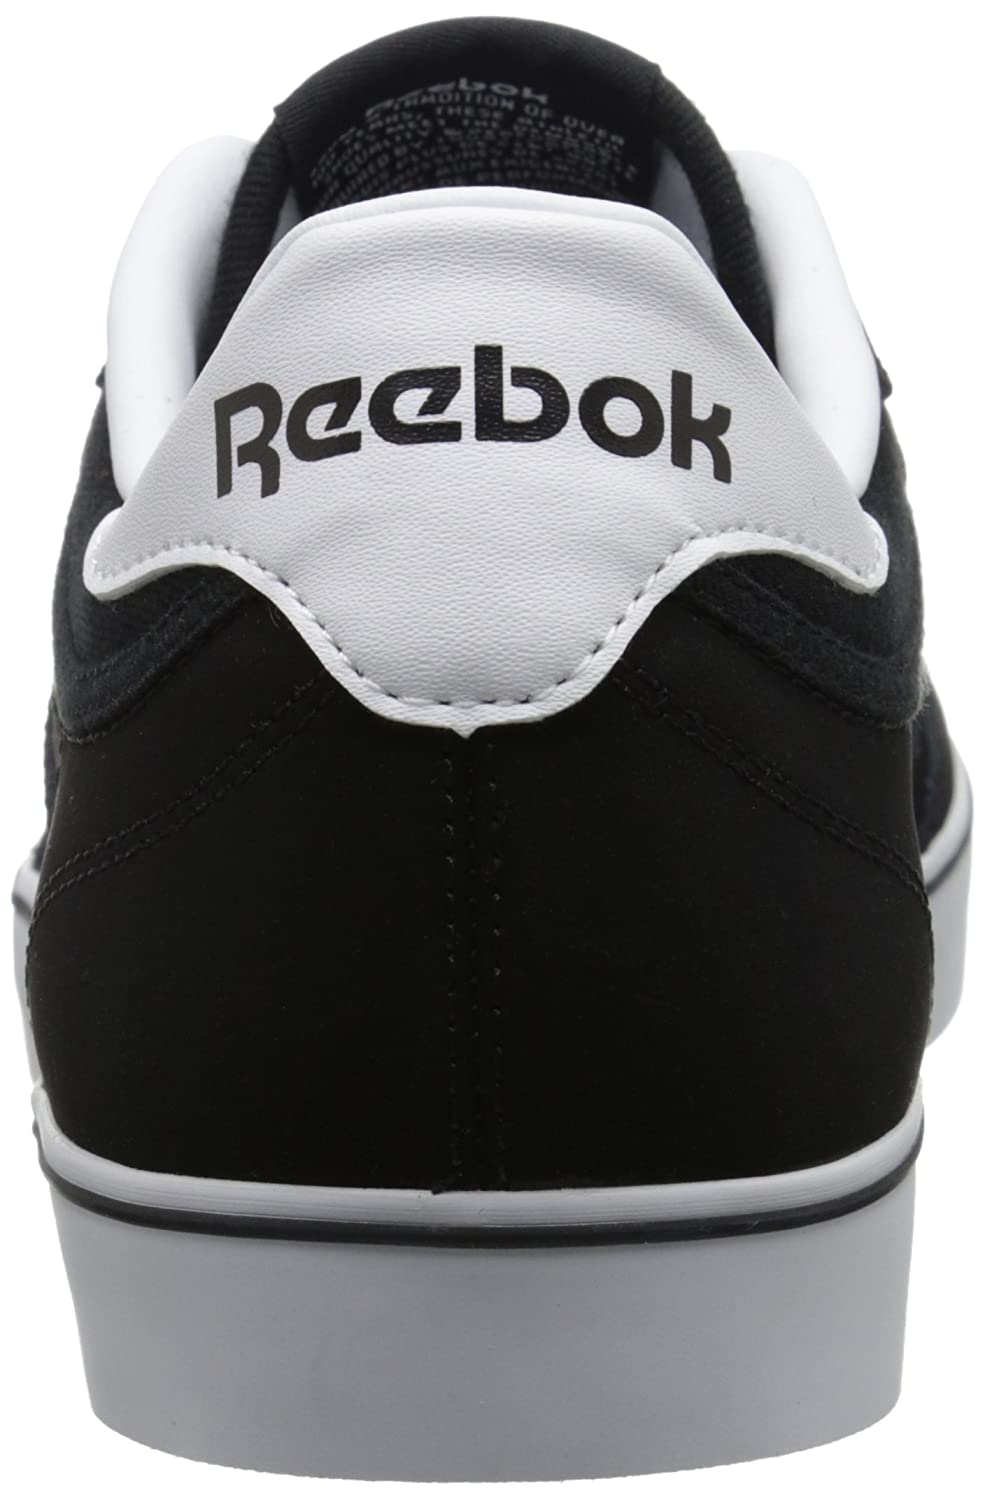 who owns reebok